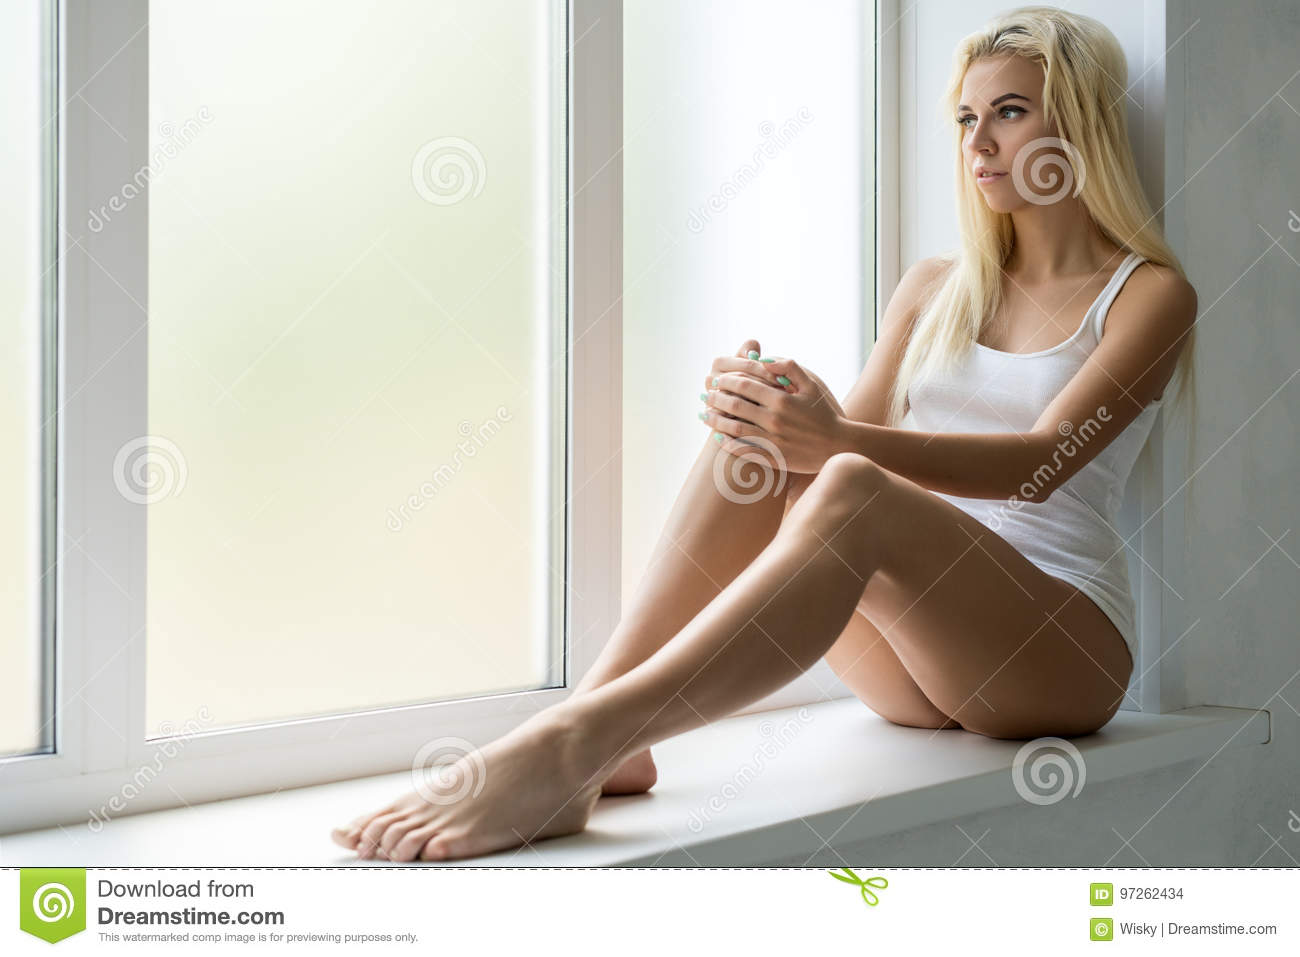 1db4da4d96c5b Young pretty slim blonde wearing white top and shorts sitting on window  sill in studio